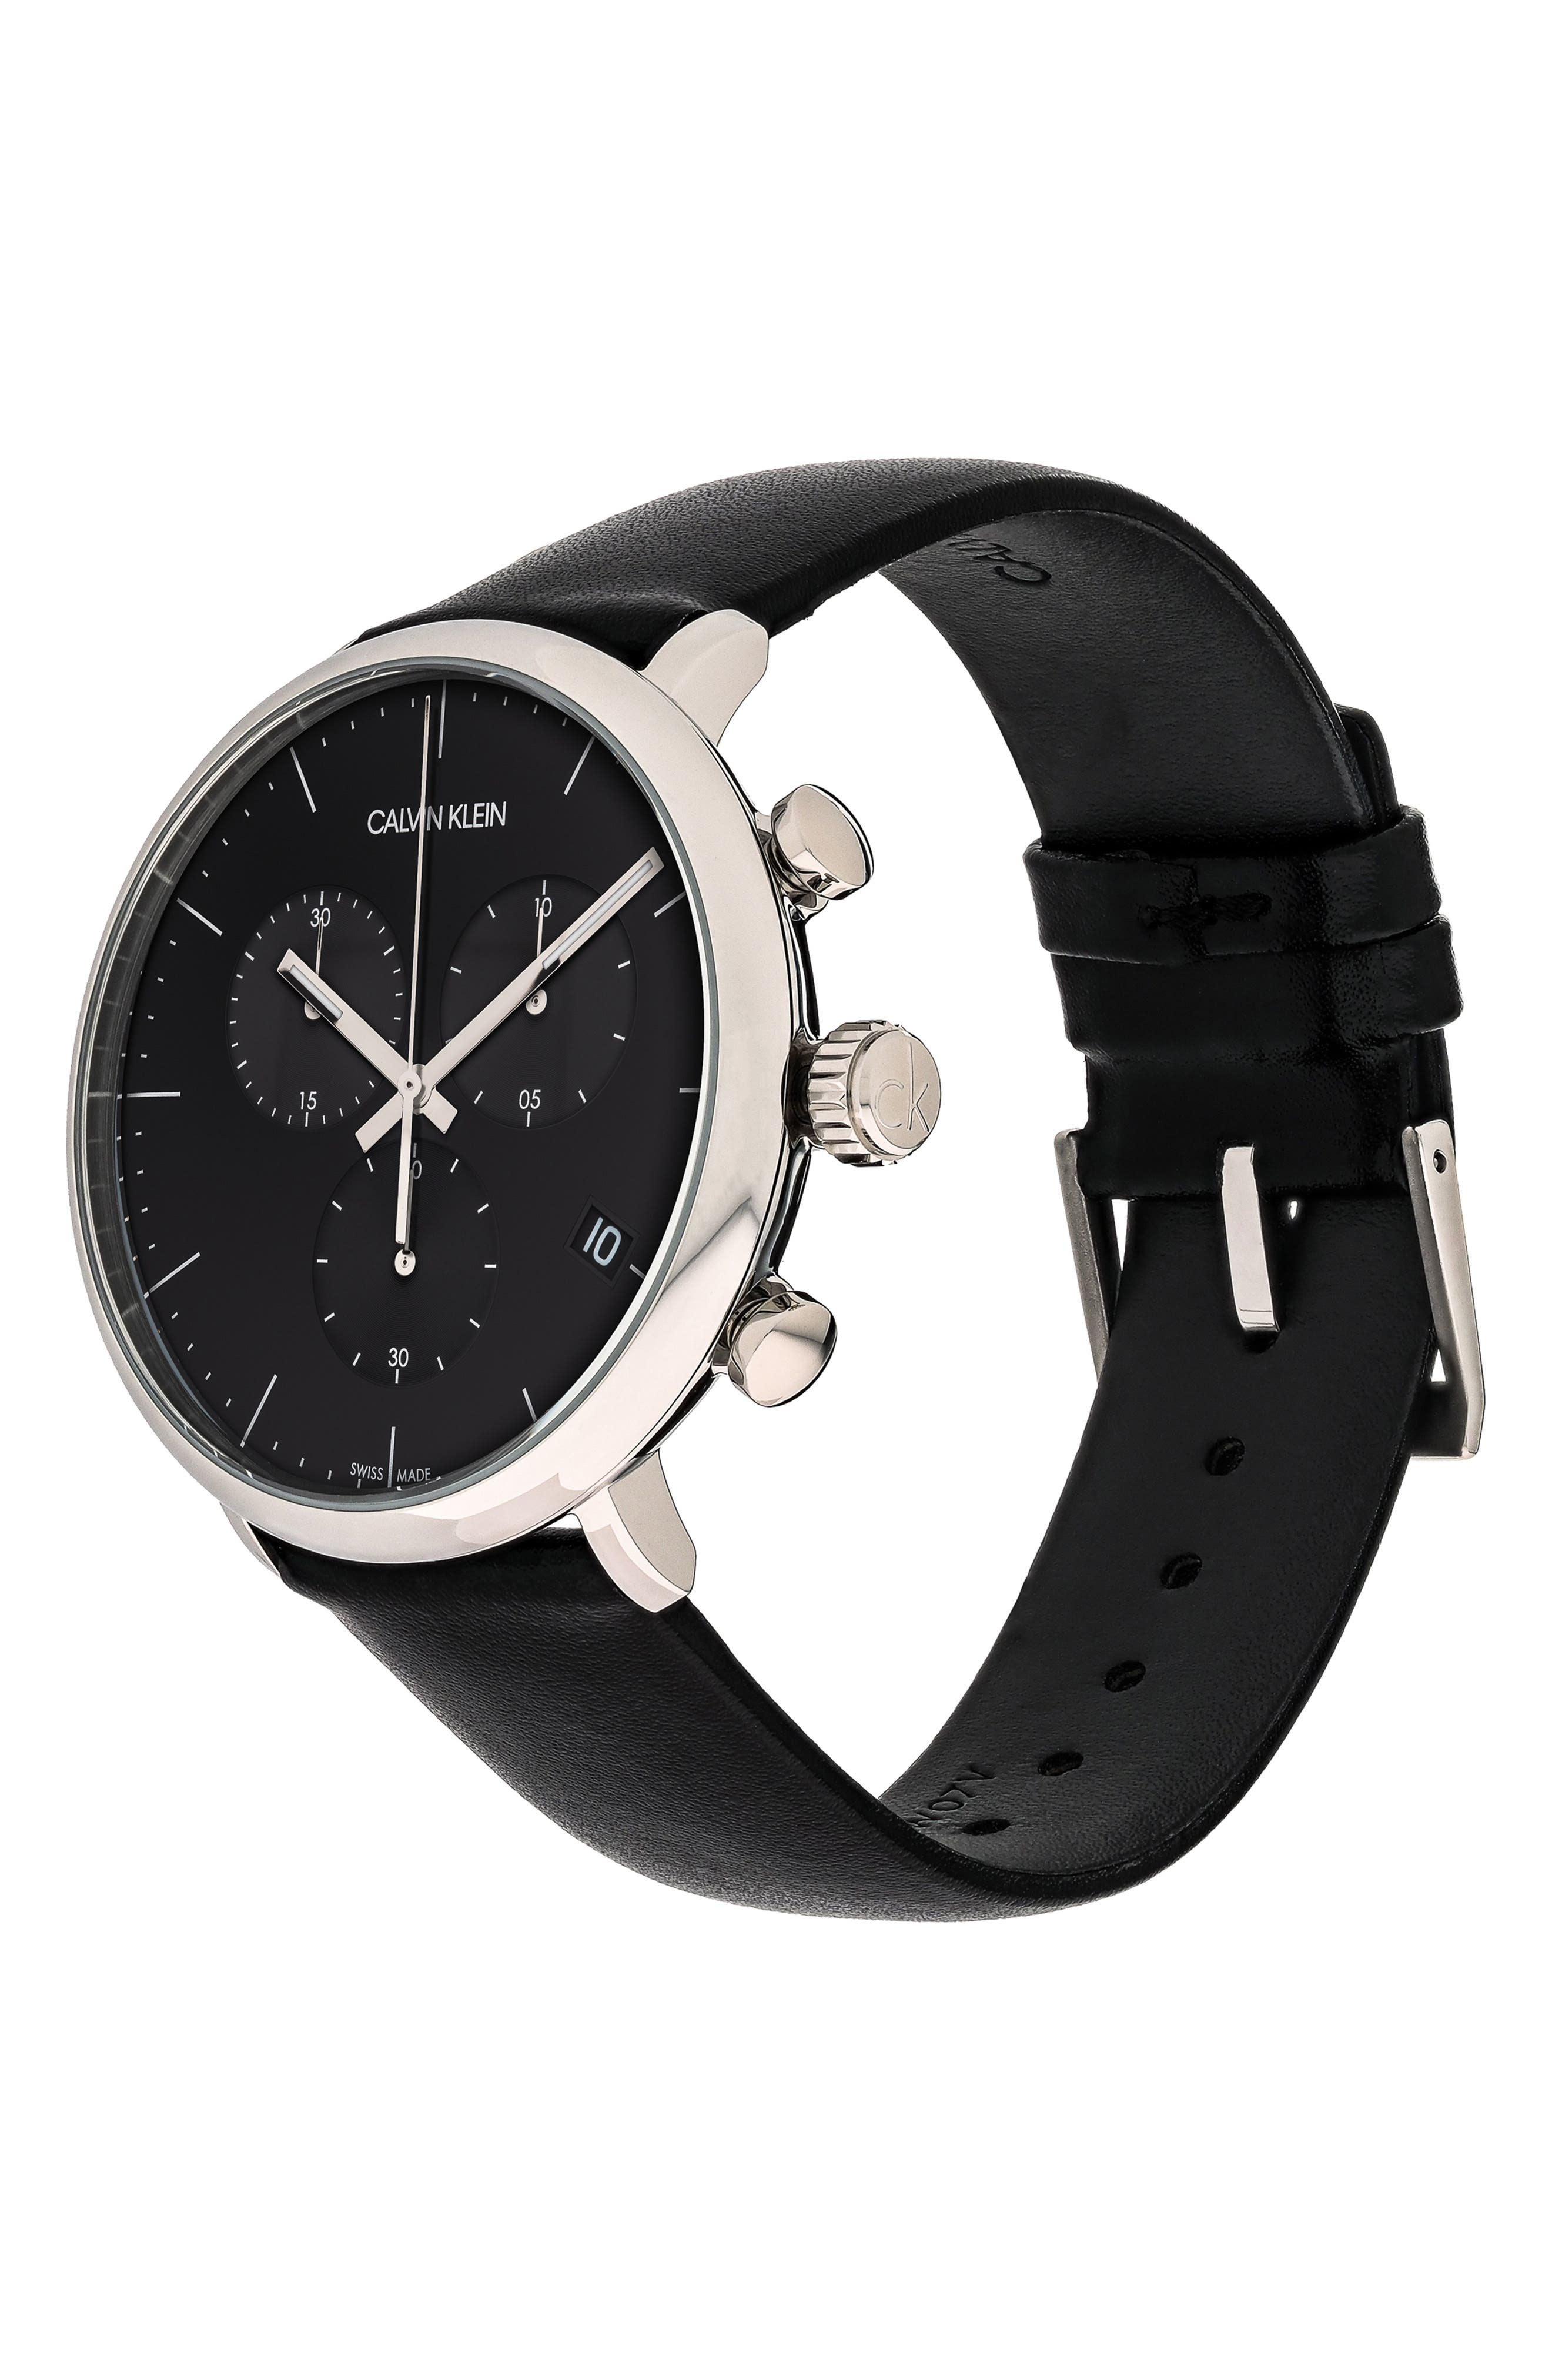 CALVIN KLEIN, High Noon Chronograph Leather Strap Watch, 43mm, Alternate thumbnail 4, color, BLACK/ SILVER/ BLACK